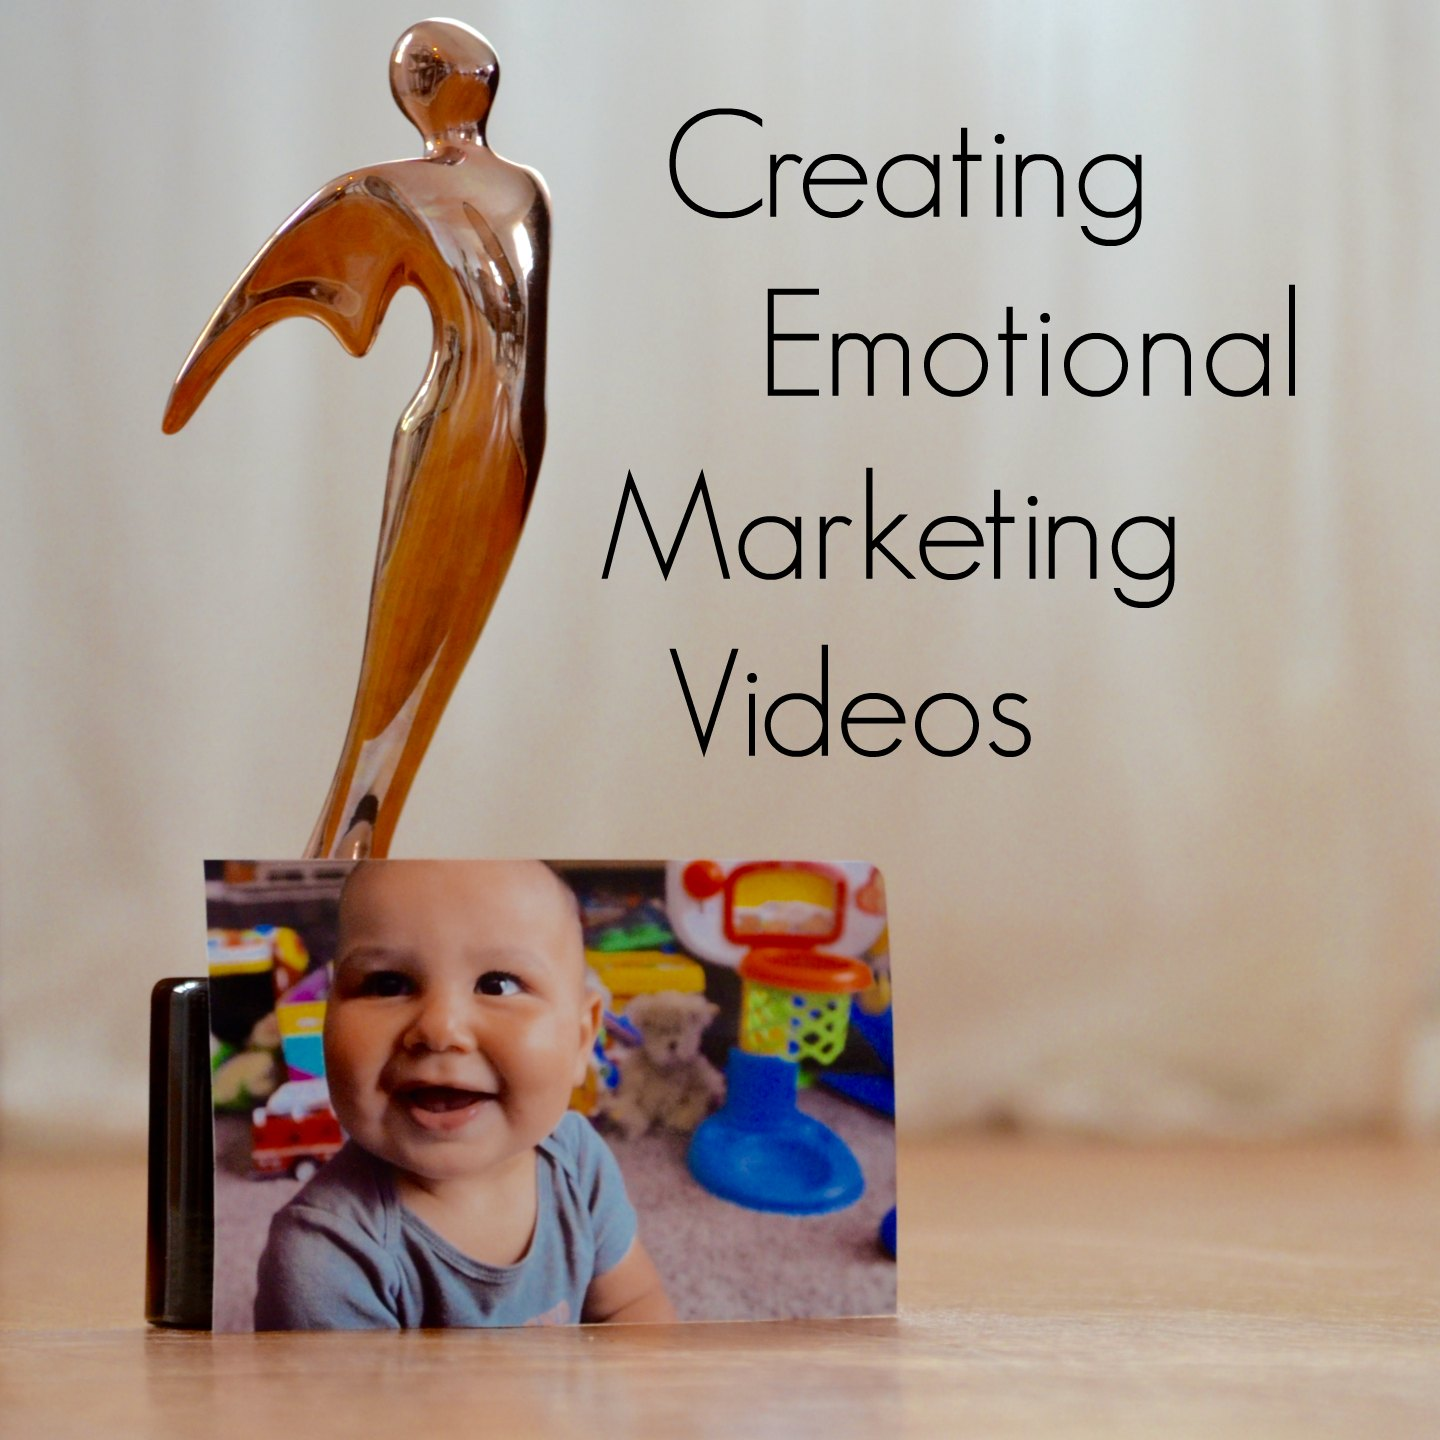 advertising to emotions Emotional branding is a term used within marketing communication that refers to the practice of building brands that appeal directly to a consumer's emotional state, needs and aspirations.